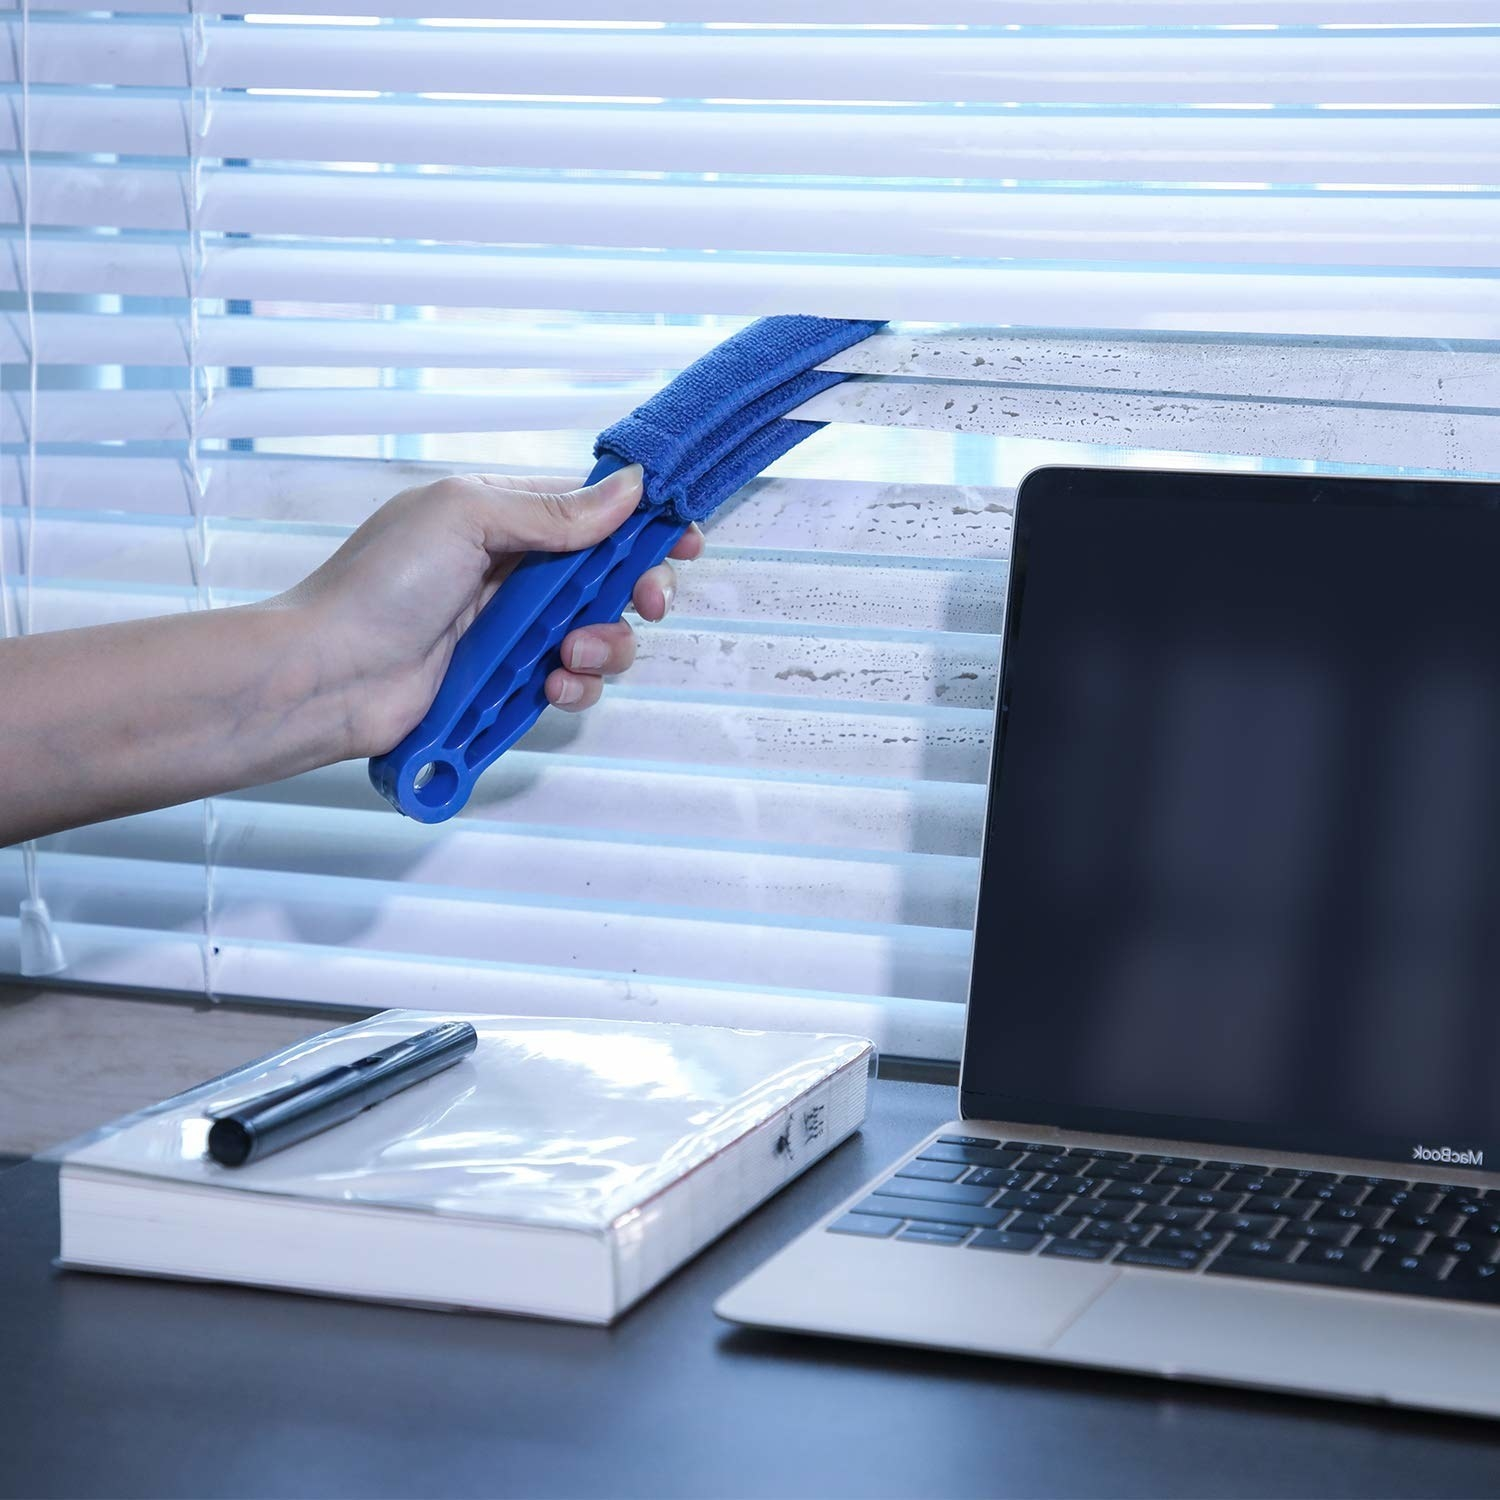 The blue cleaner removing dust from two blinds, top and bottom